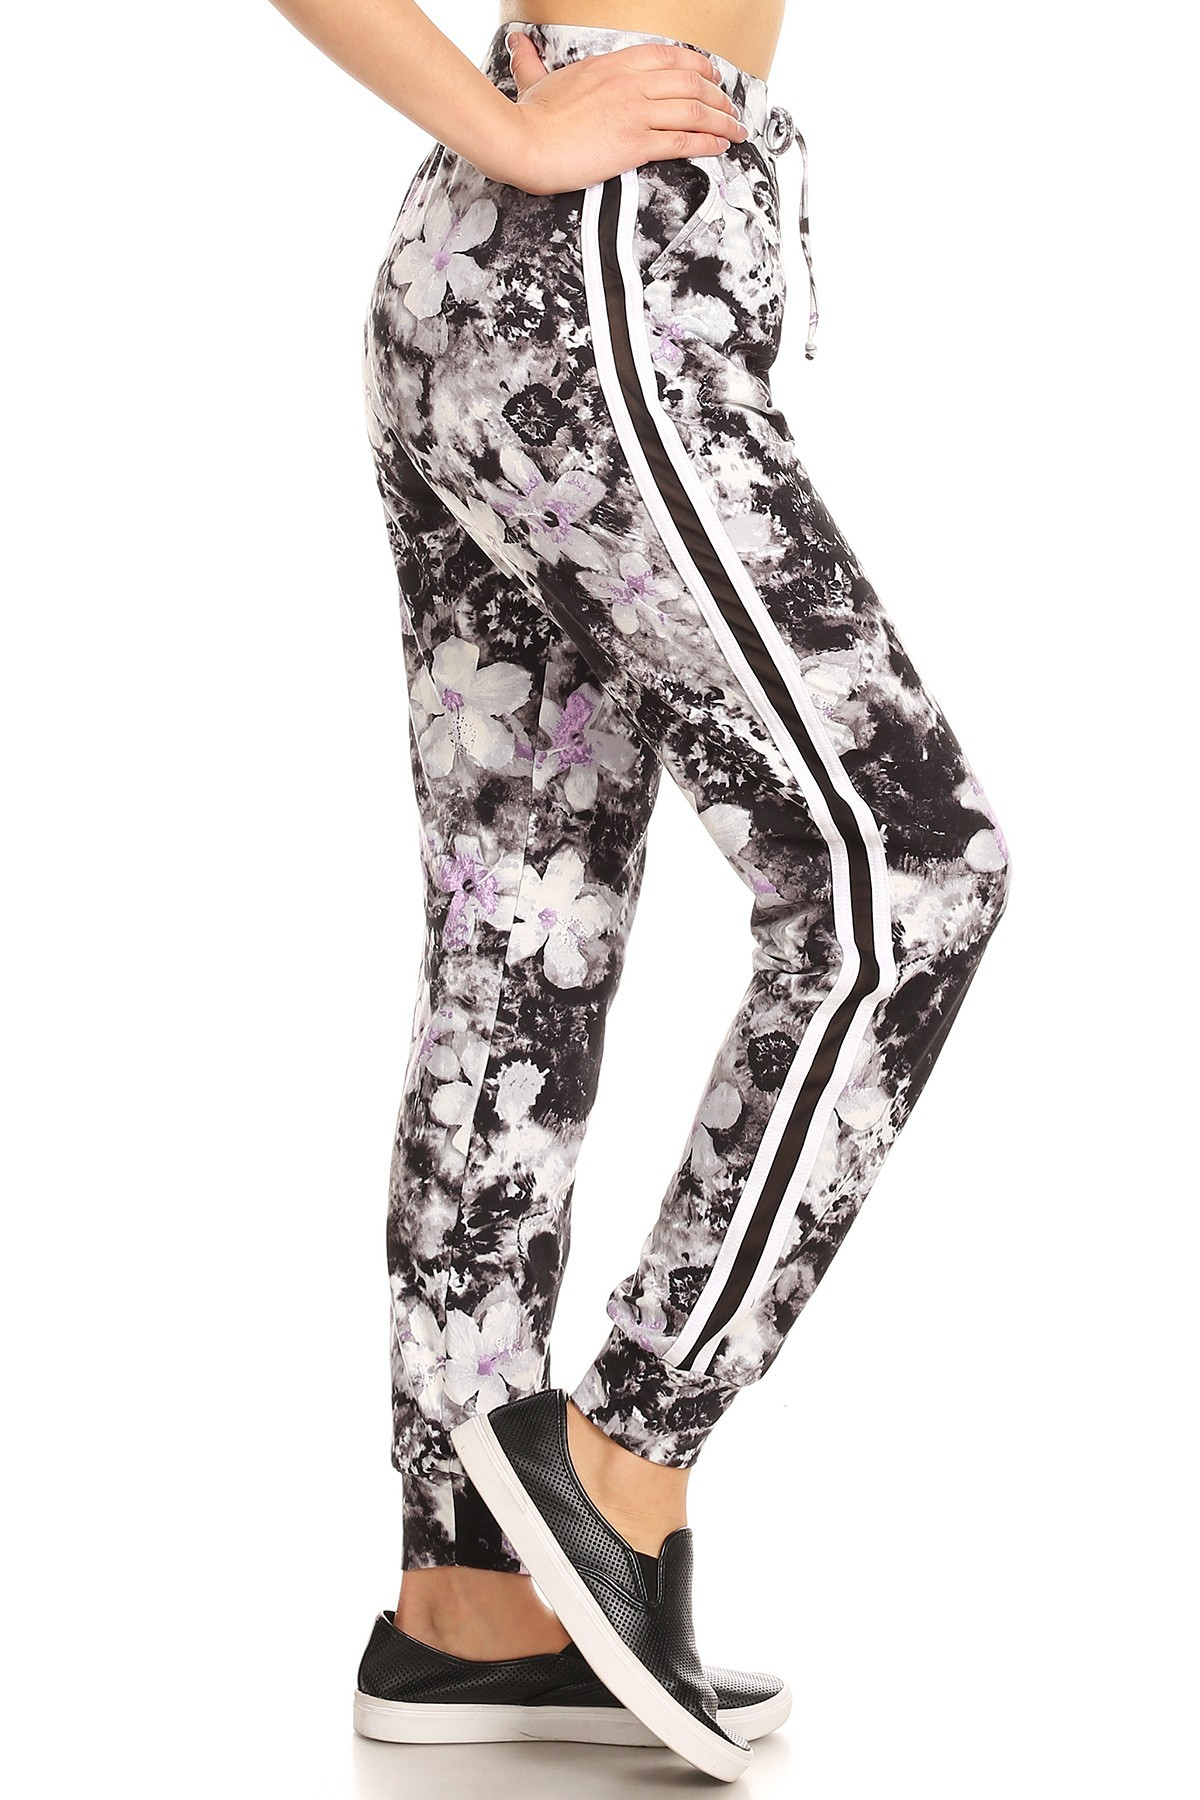 BLACKWHITE LAVENDER ABSTRACT FLORAL STRIPED JOGGER W/ SIDE MESH PANELS #8TRK18-02